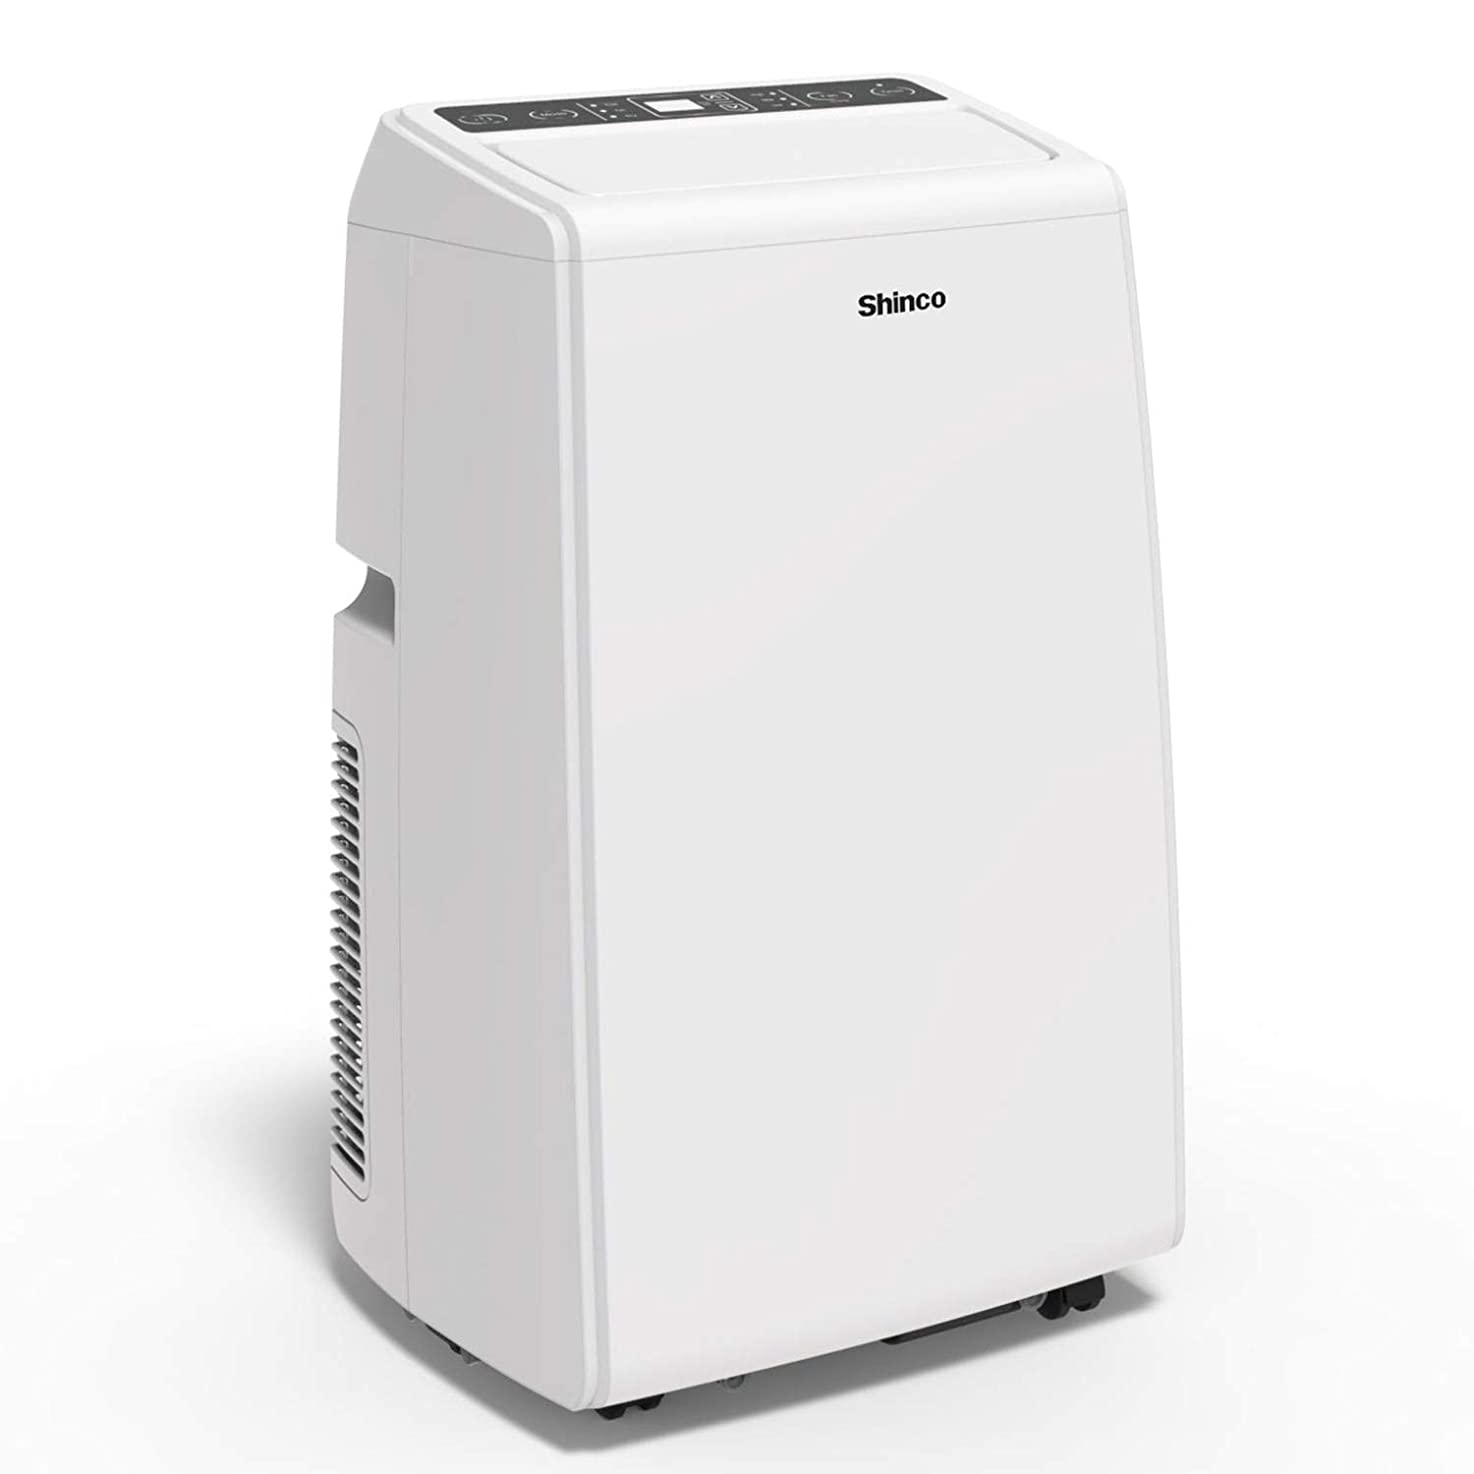 Shinco SPS5-12C 12,000 BTU Portable Air Conditioner Cool Fan Quiet Dehumidifier for Rooms Up to 400 Sq.Ft. LED Display, Remote Control, White vzlnbdfytgqyt6